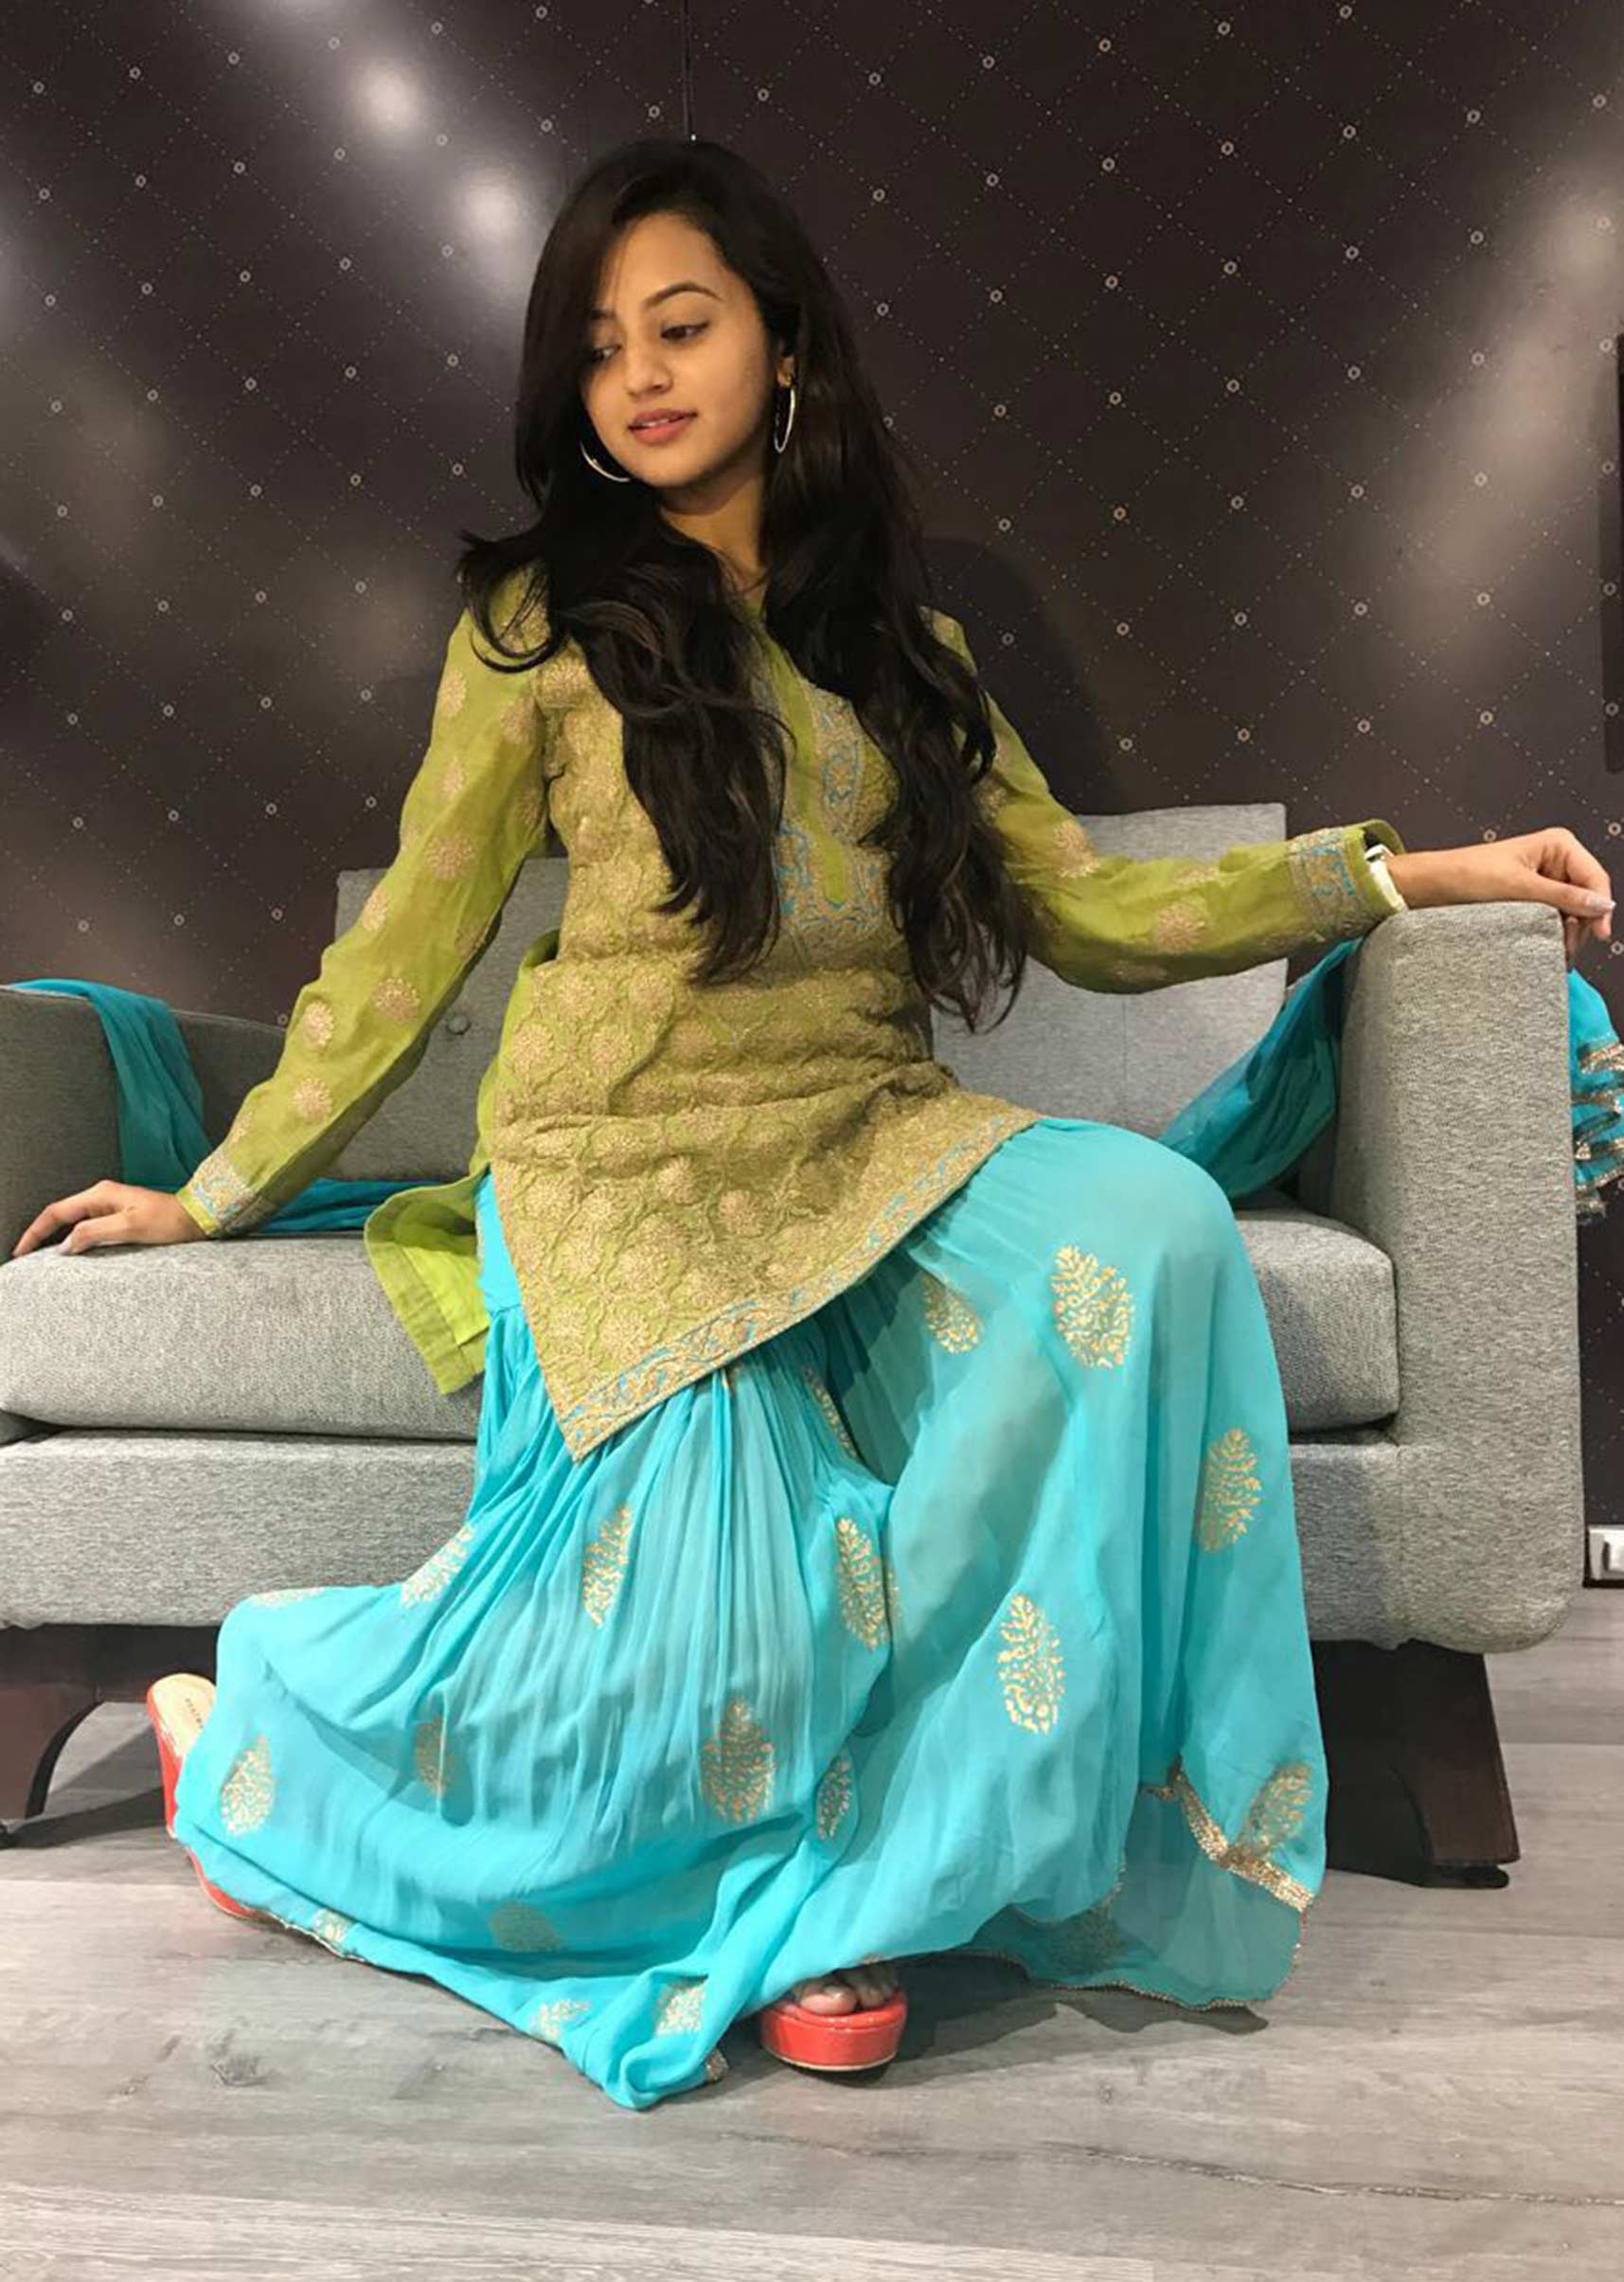 Helly Shah Age, Photos, Biography, Religion, Awards, Family, Height, Birthday, Boyfriend, Net Worth, Education, Instagram, Twitter, Facebook, Wiki, Imdb (14)